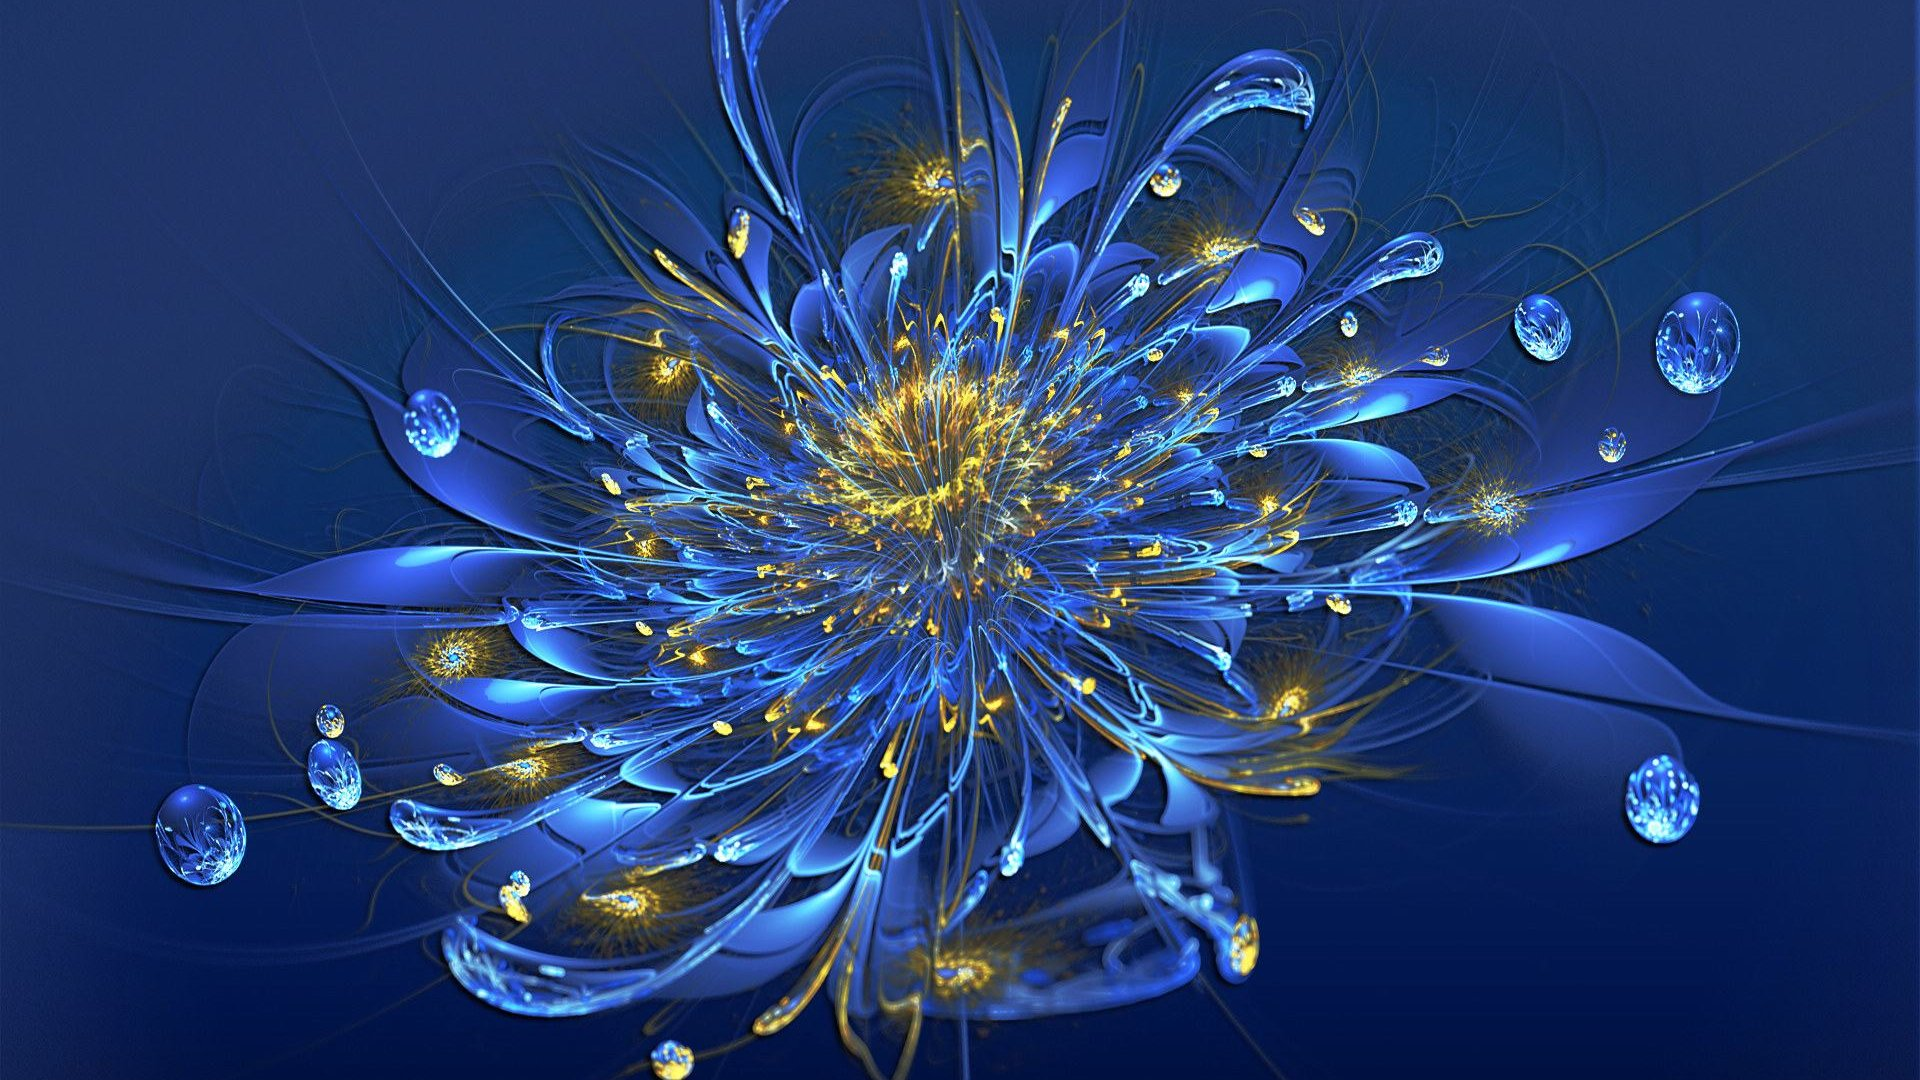 abstract 3d wallpaper 1920x1080 - photo #17